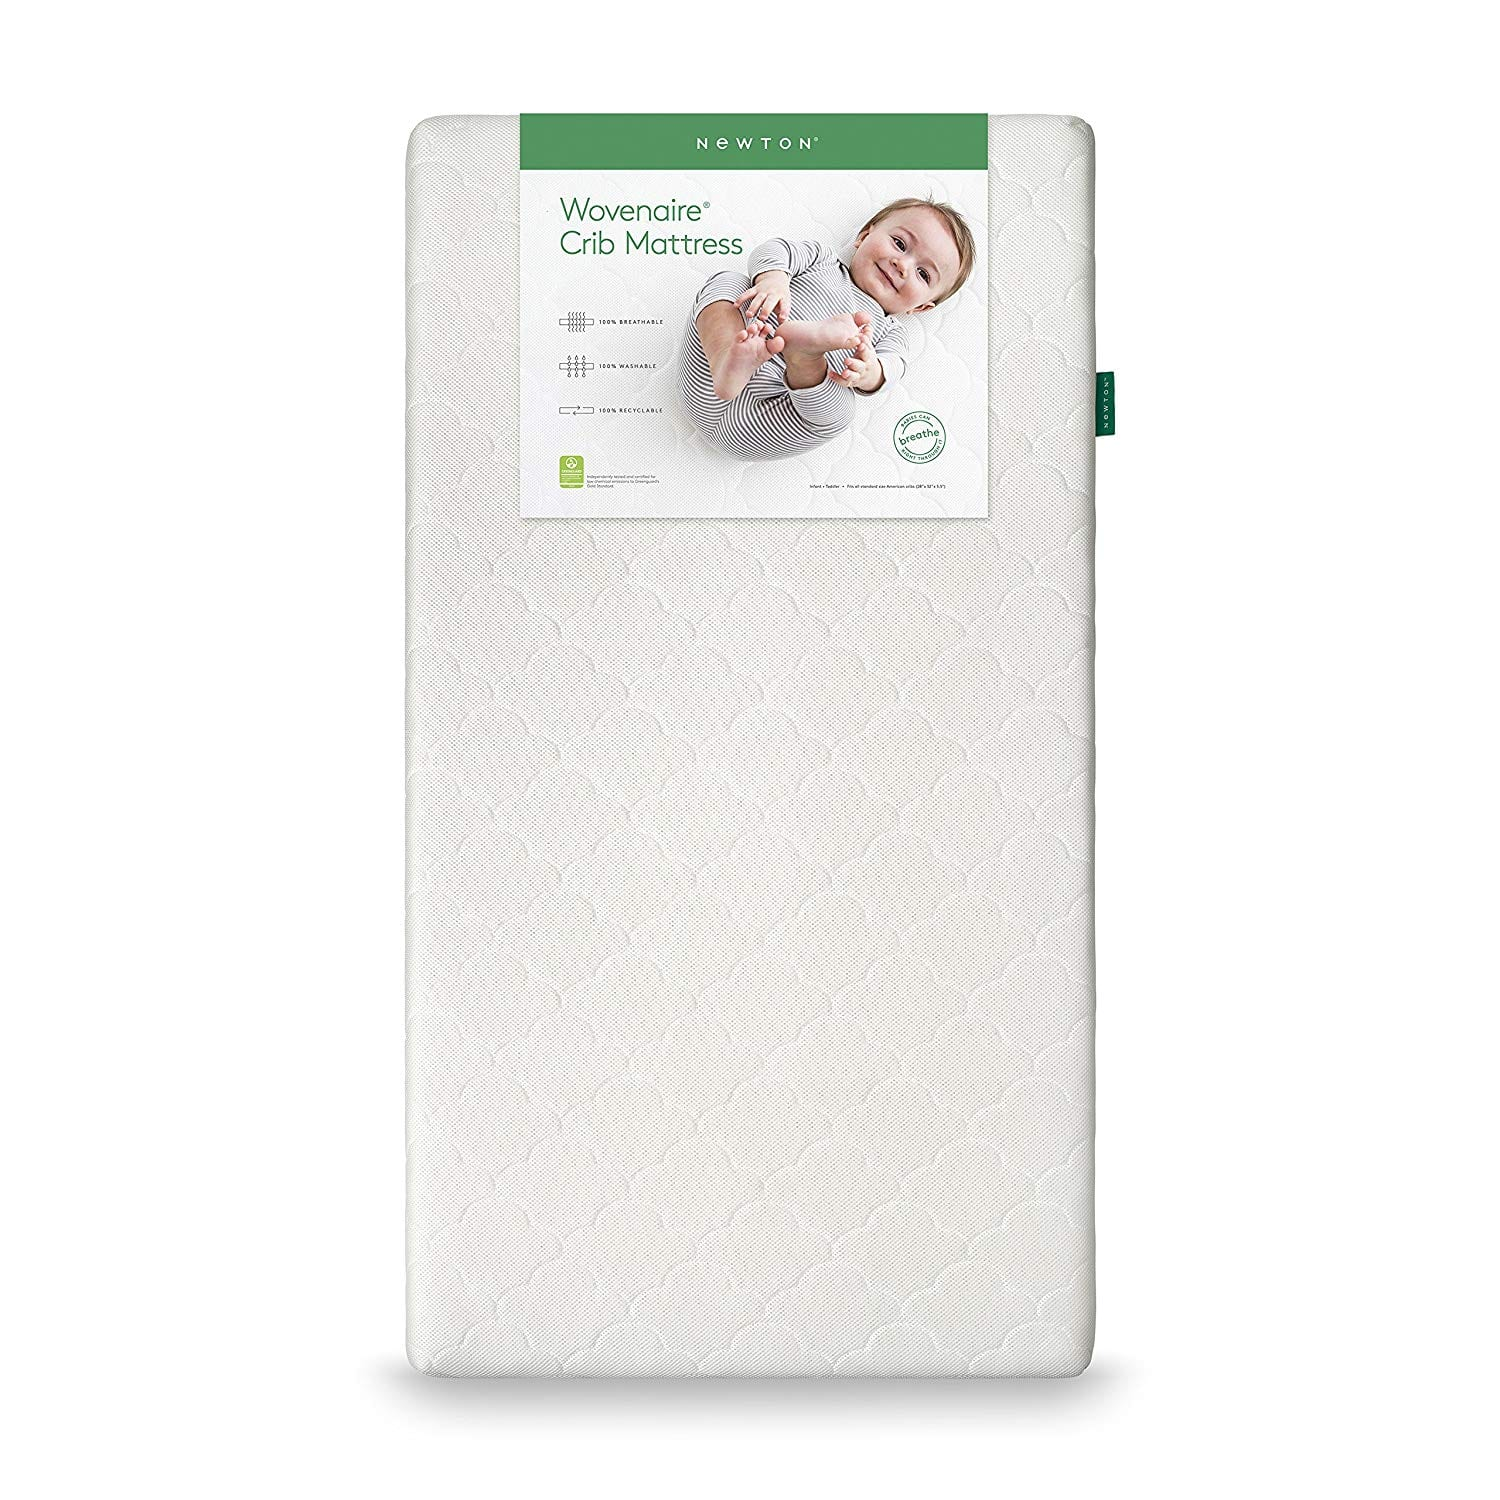 Newton Best Crib Mattress Reviews by www.snoremagazine.com